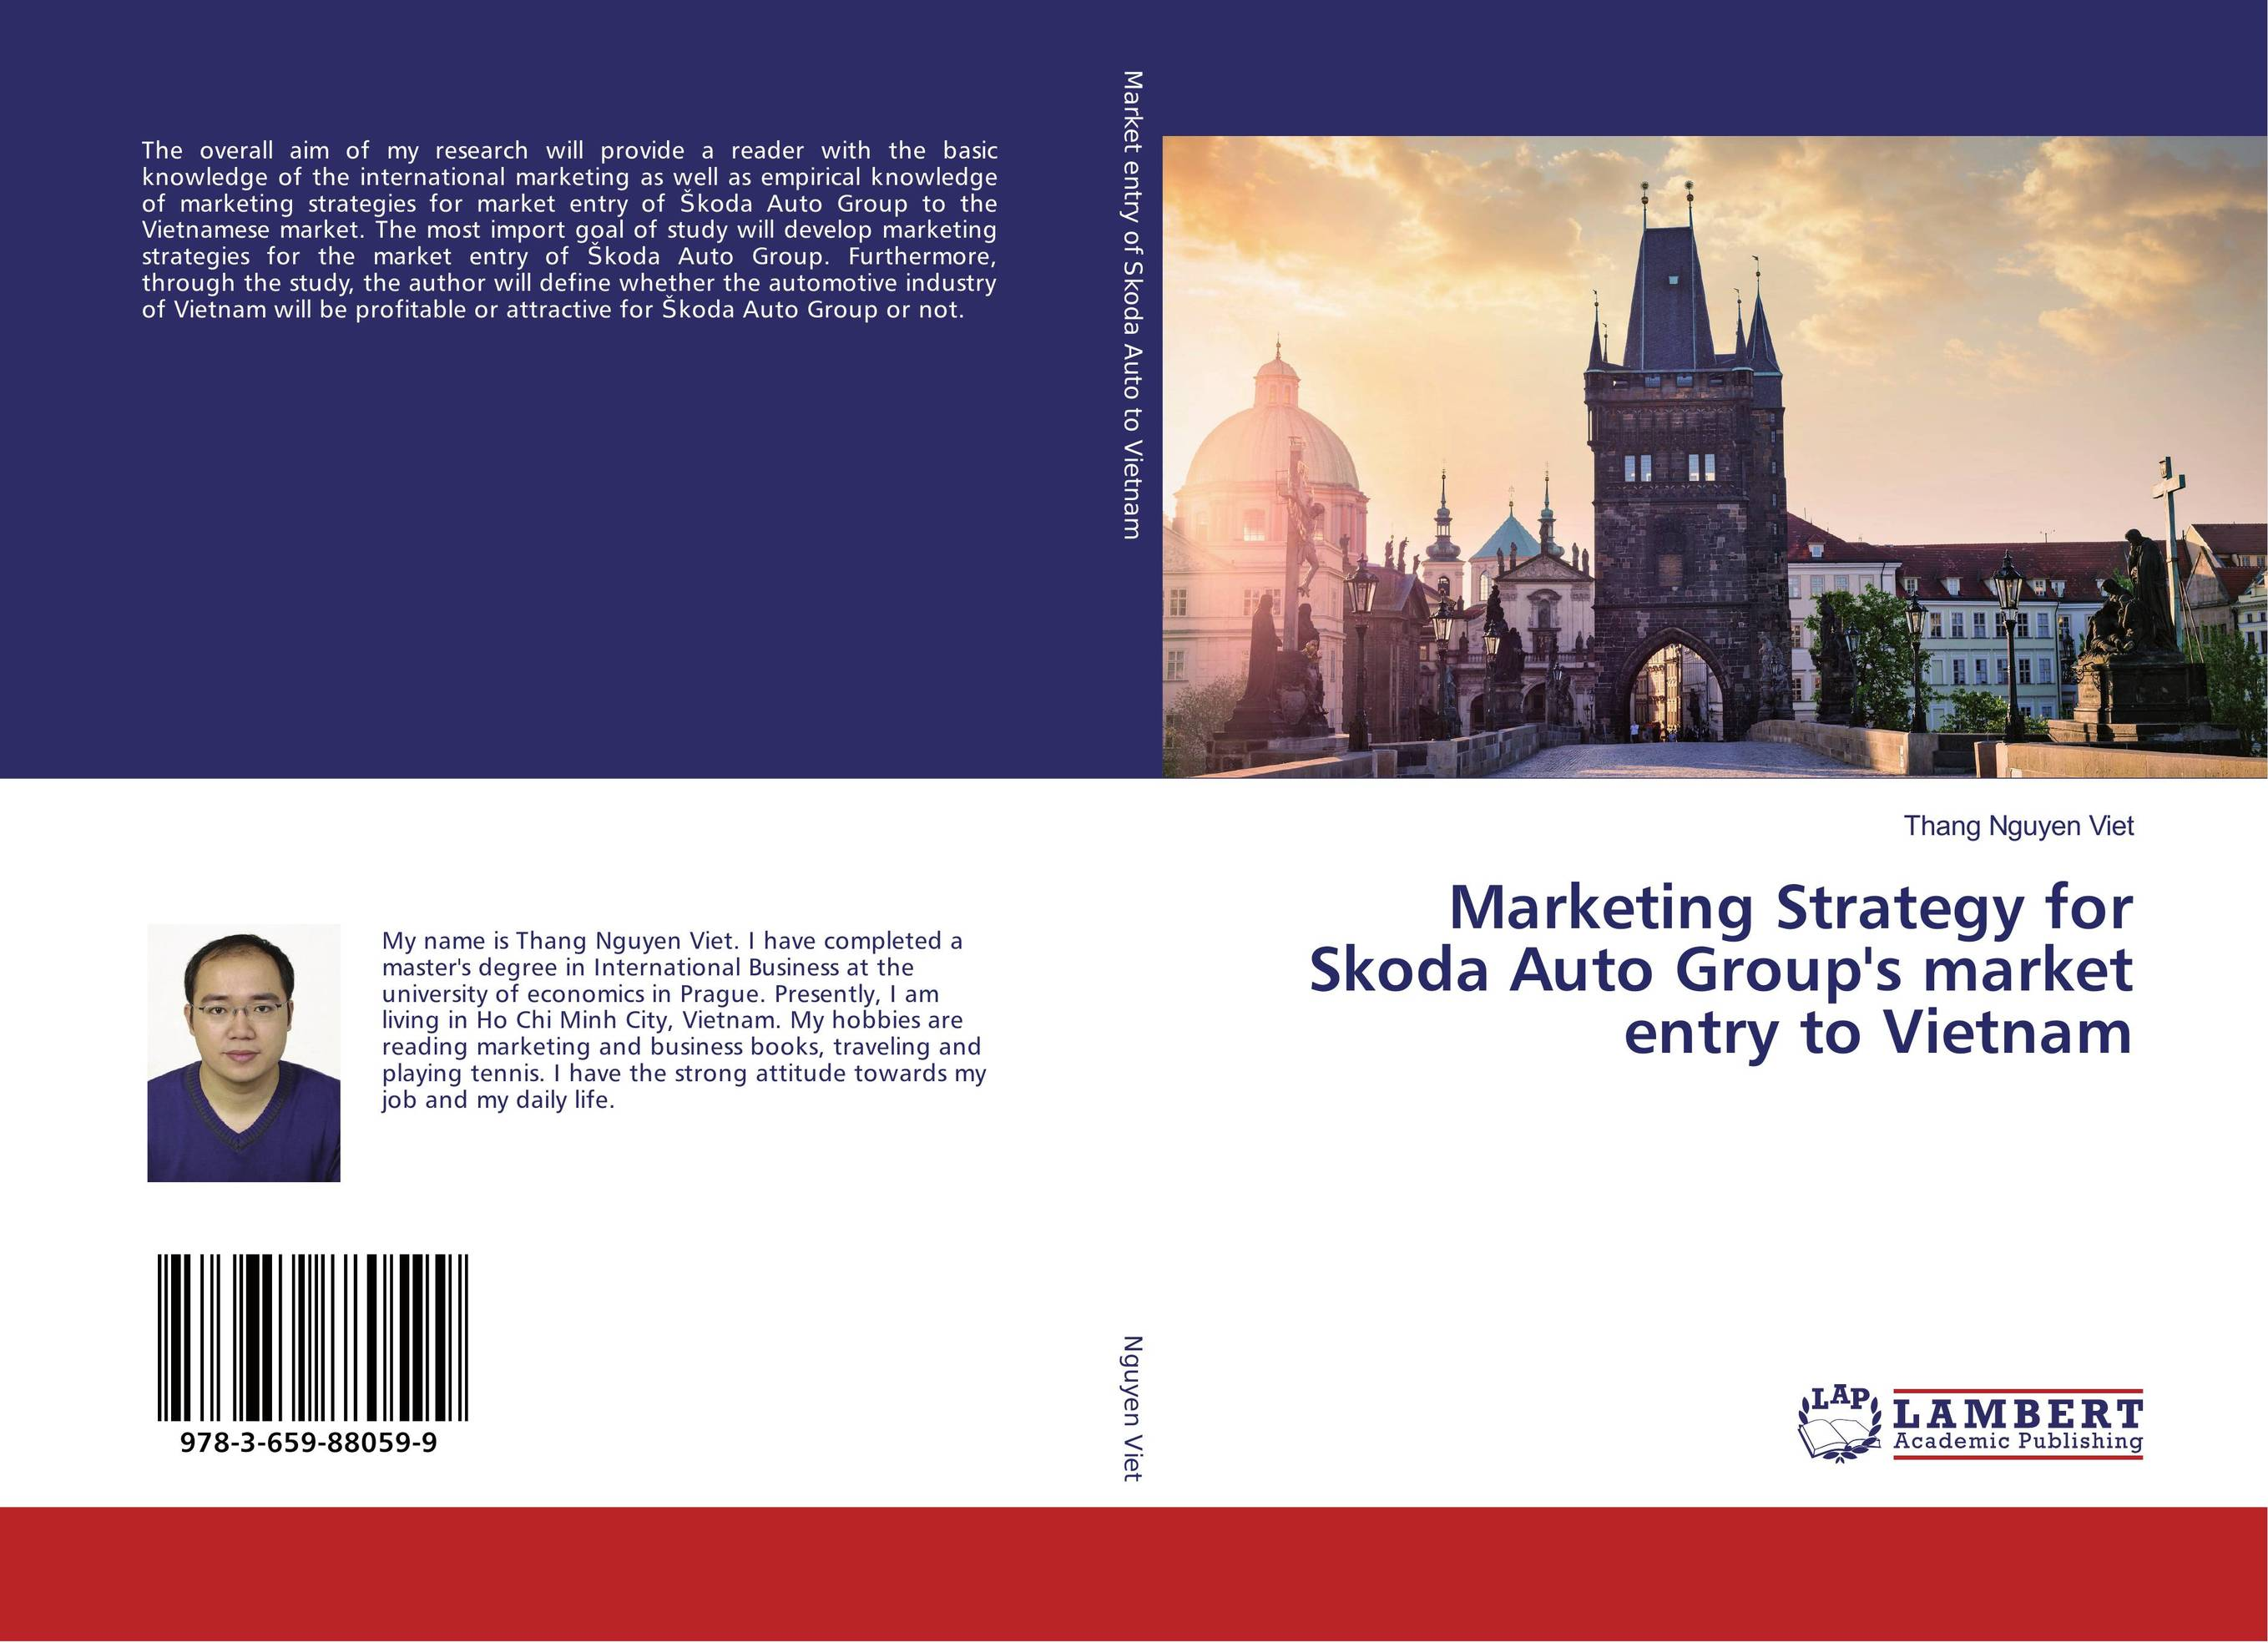 Marketing Strategy for Skoda Auto Group's market entry to Vietnam pizza group entry max 6